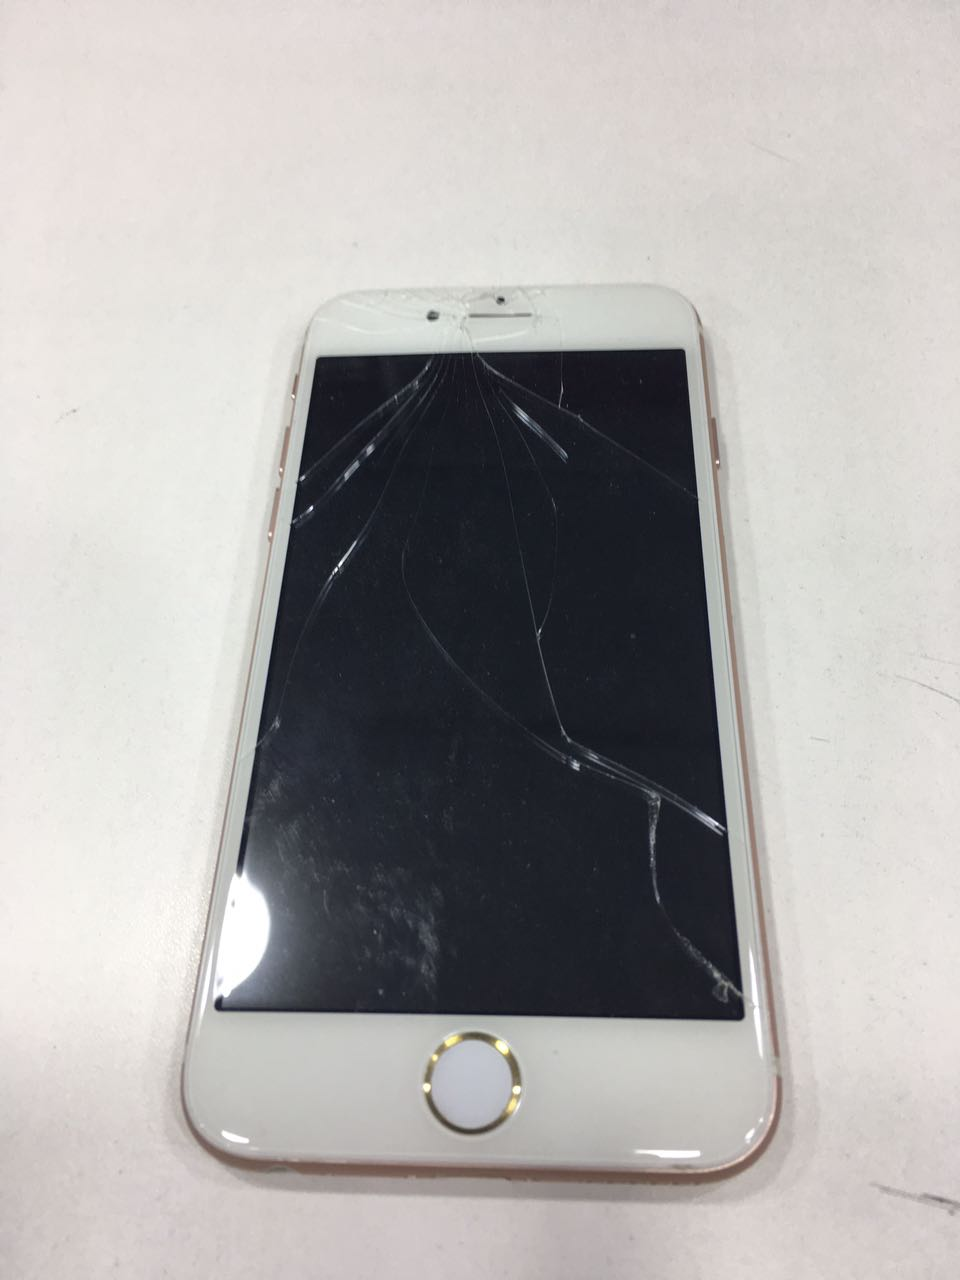 new concept 756ed 1ff22 Why me?!? Story of a broken iPhone 6 screen in Dubai - iPhone | iPad ...